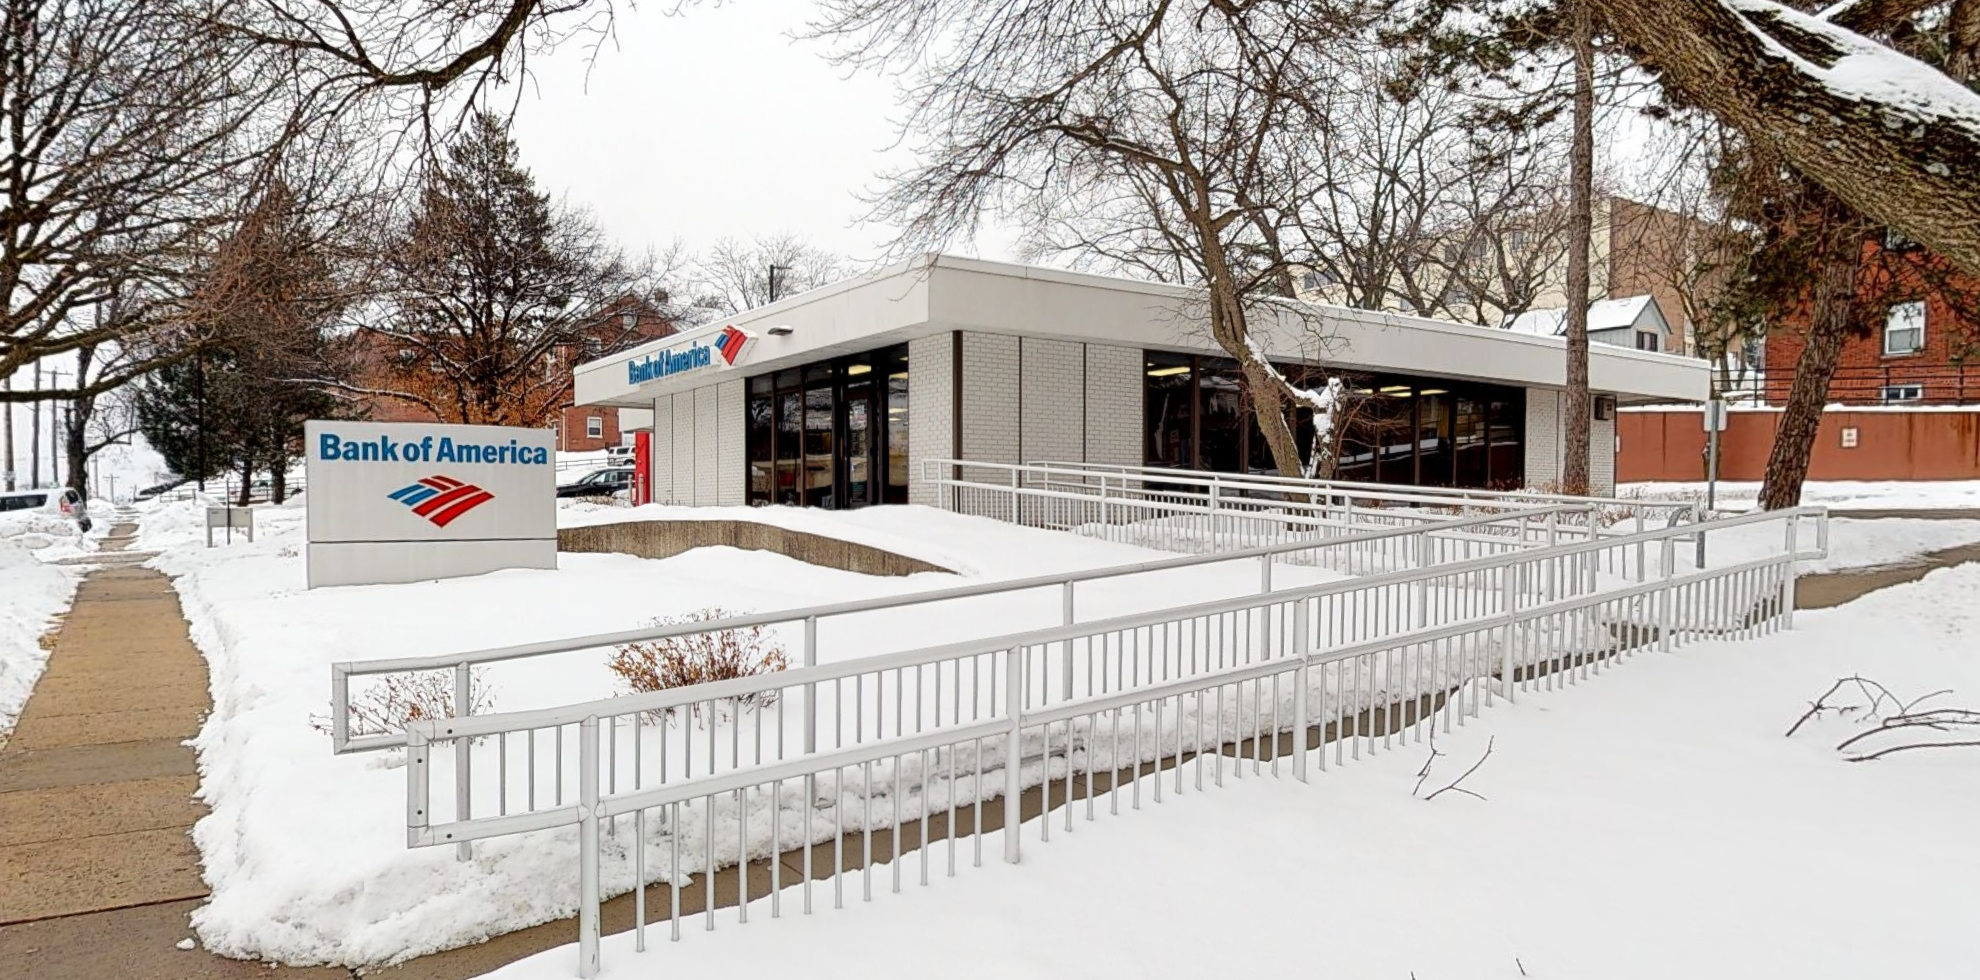 Bank of America financial center with drive-thru ATM | 3422 Ingersoll Ave, Des Moines, IA 50312